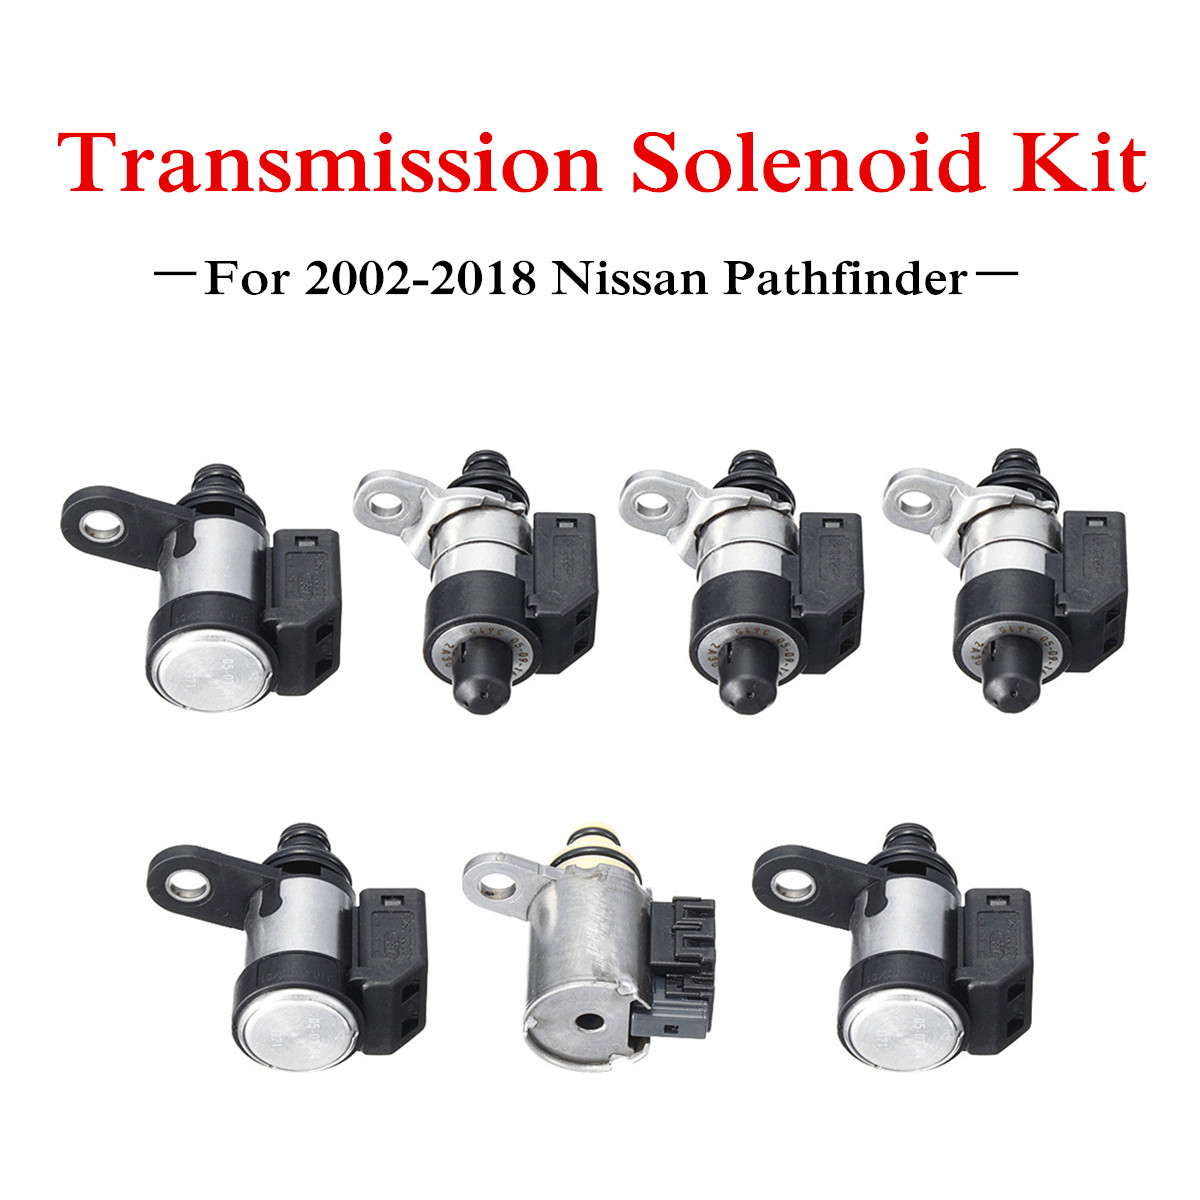 7x Automatic RE5R05A Transmission Solenoid Kit for Nissan Pathfinder 2002-2018 Front Brake-Band High & Low Reverse & EPC7x Automatic RE5R05A Transmission Solenoid Kit for Nissan Pathfinder 2002-2018 Front Brake-Band High & Low Reverse & EPC